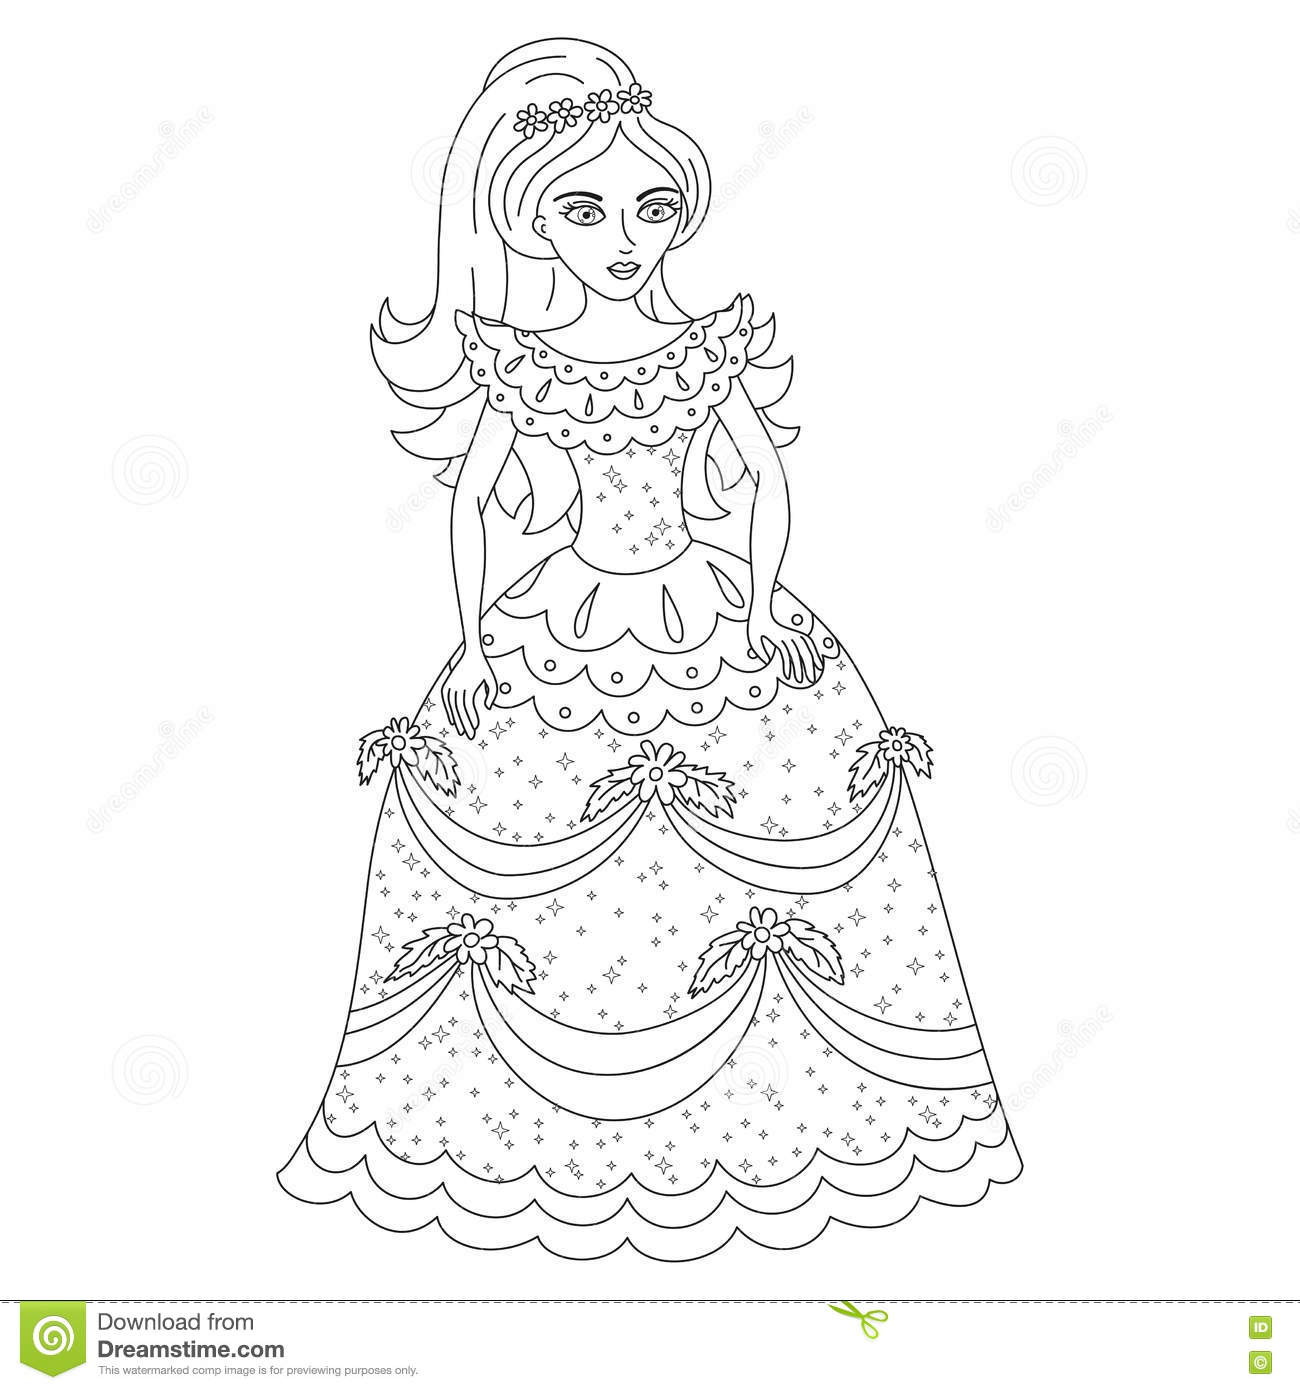 Beautiful Princess In Shining Dress With Spangles Coloring Book Page